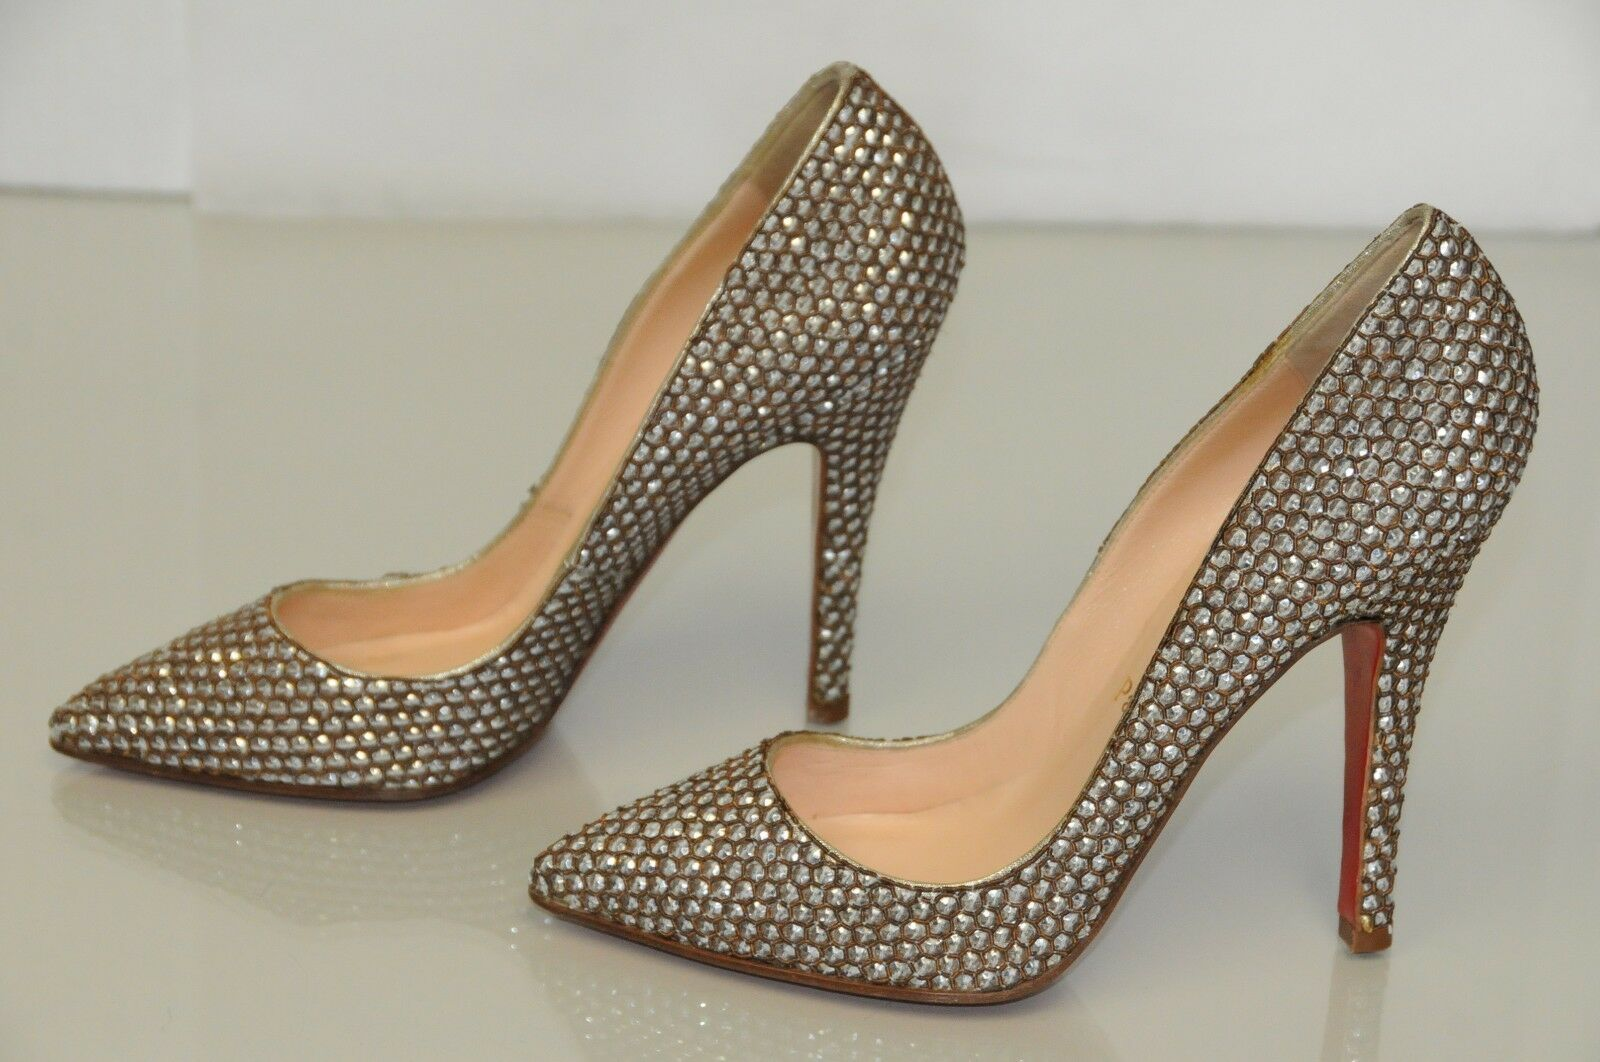 NUOVO Christian Louboutin Sequin JEWEled Pigalle  argento Pump Heels scarpe 37  memorizzare